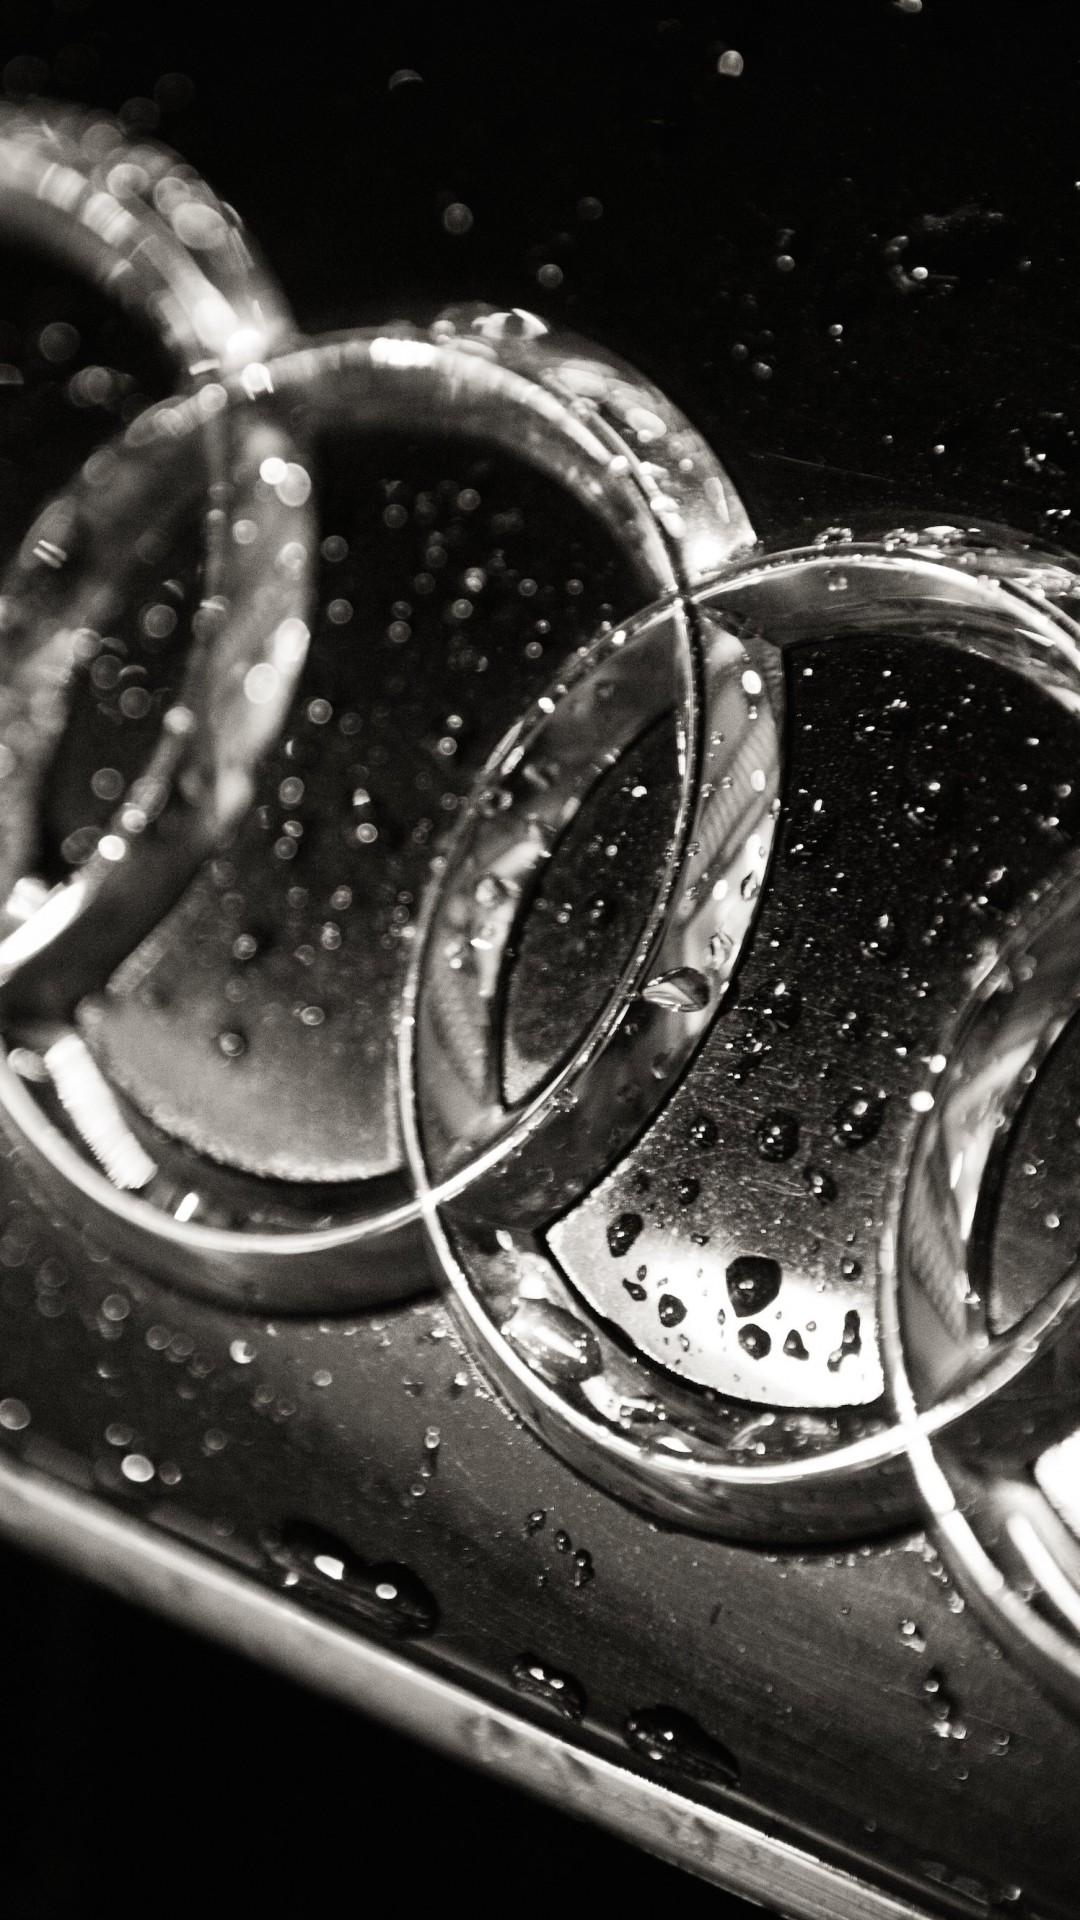 Audi Logo in Black & White Wallpaper for HTC One